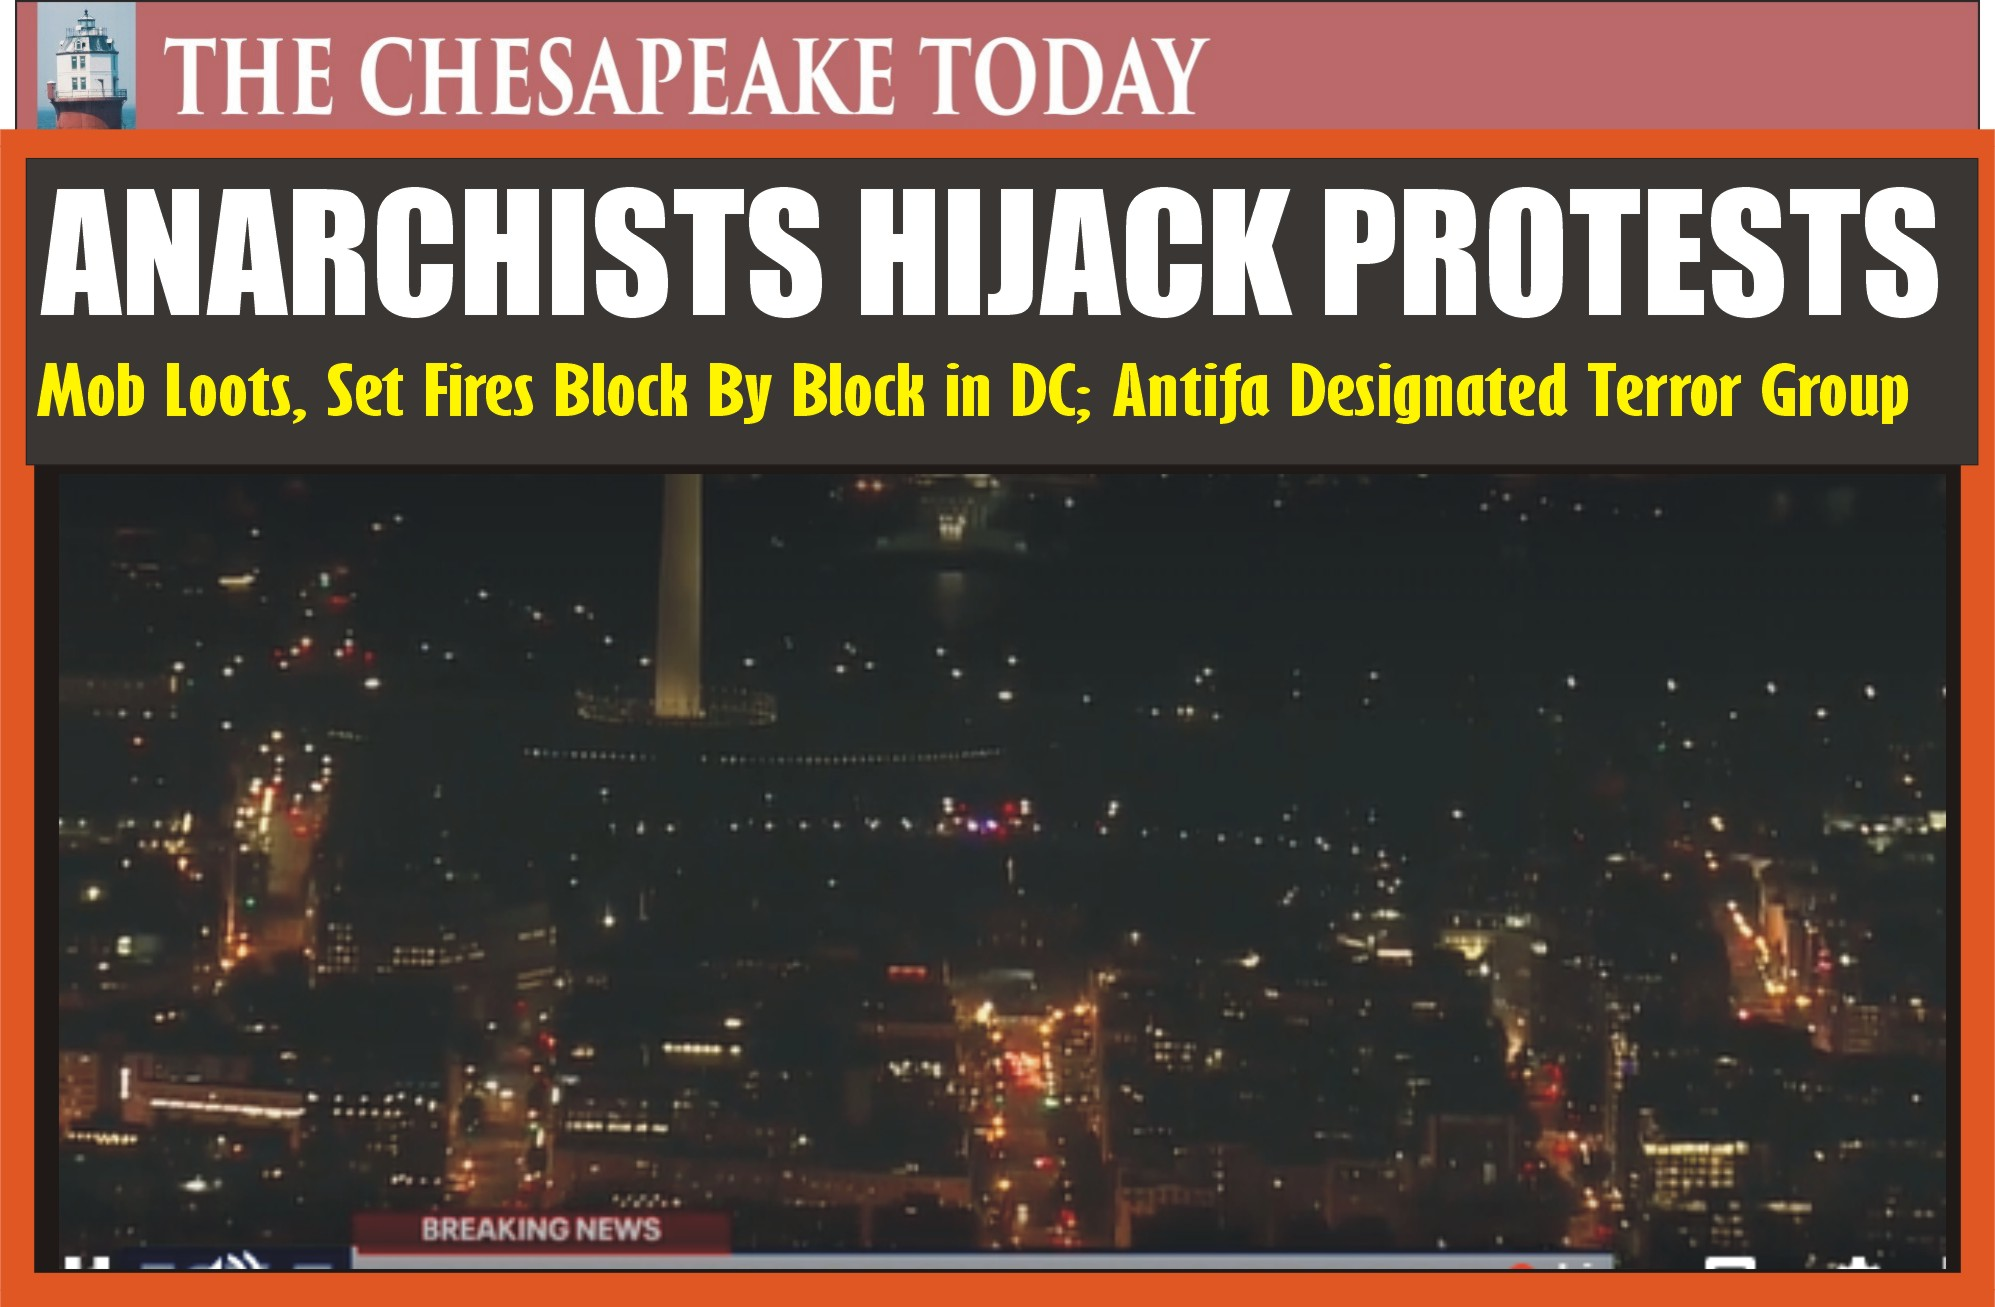 RIOT SQUAD: Mobs hijacked protest in DC; loot CVS drug store; spread prescriptions through streets; historic St. John's Church arson by terrorists in heart of DC was extinguished by DC Firefighters; AFL-CIO headquarters torched